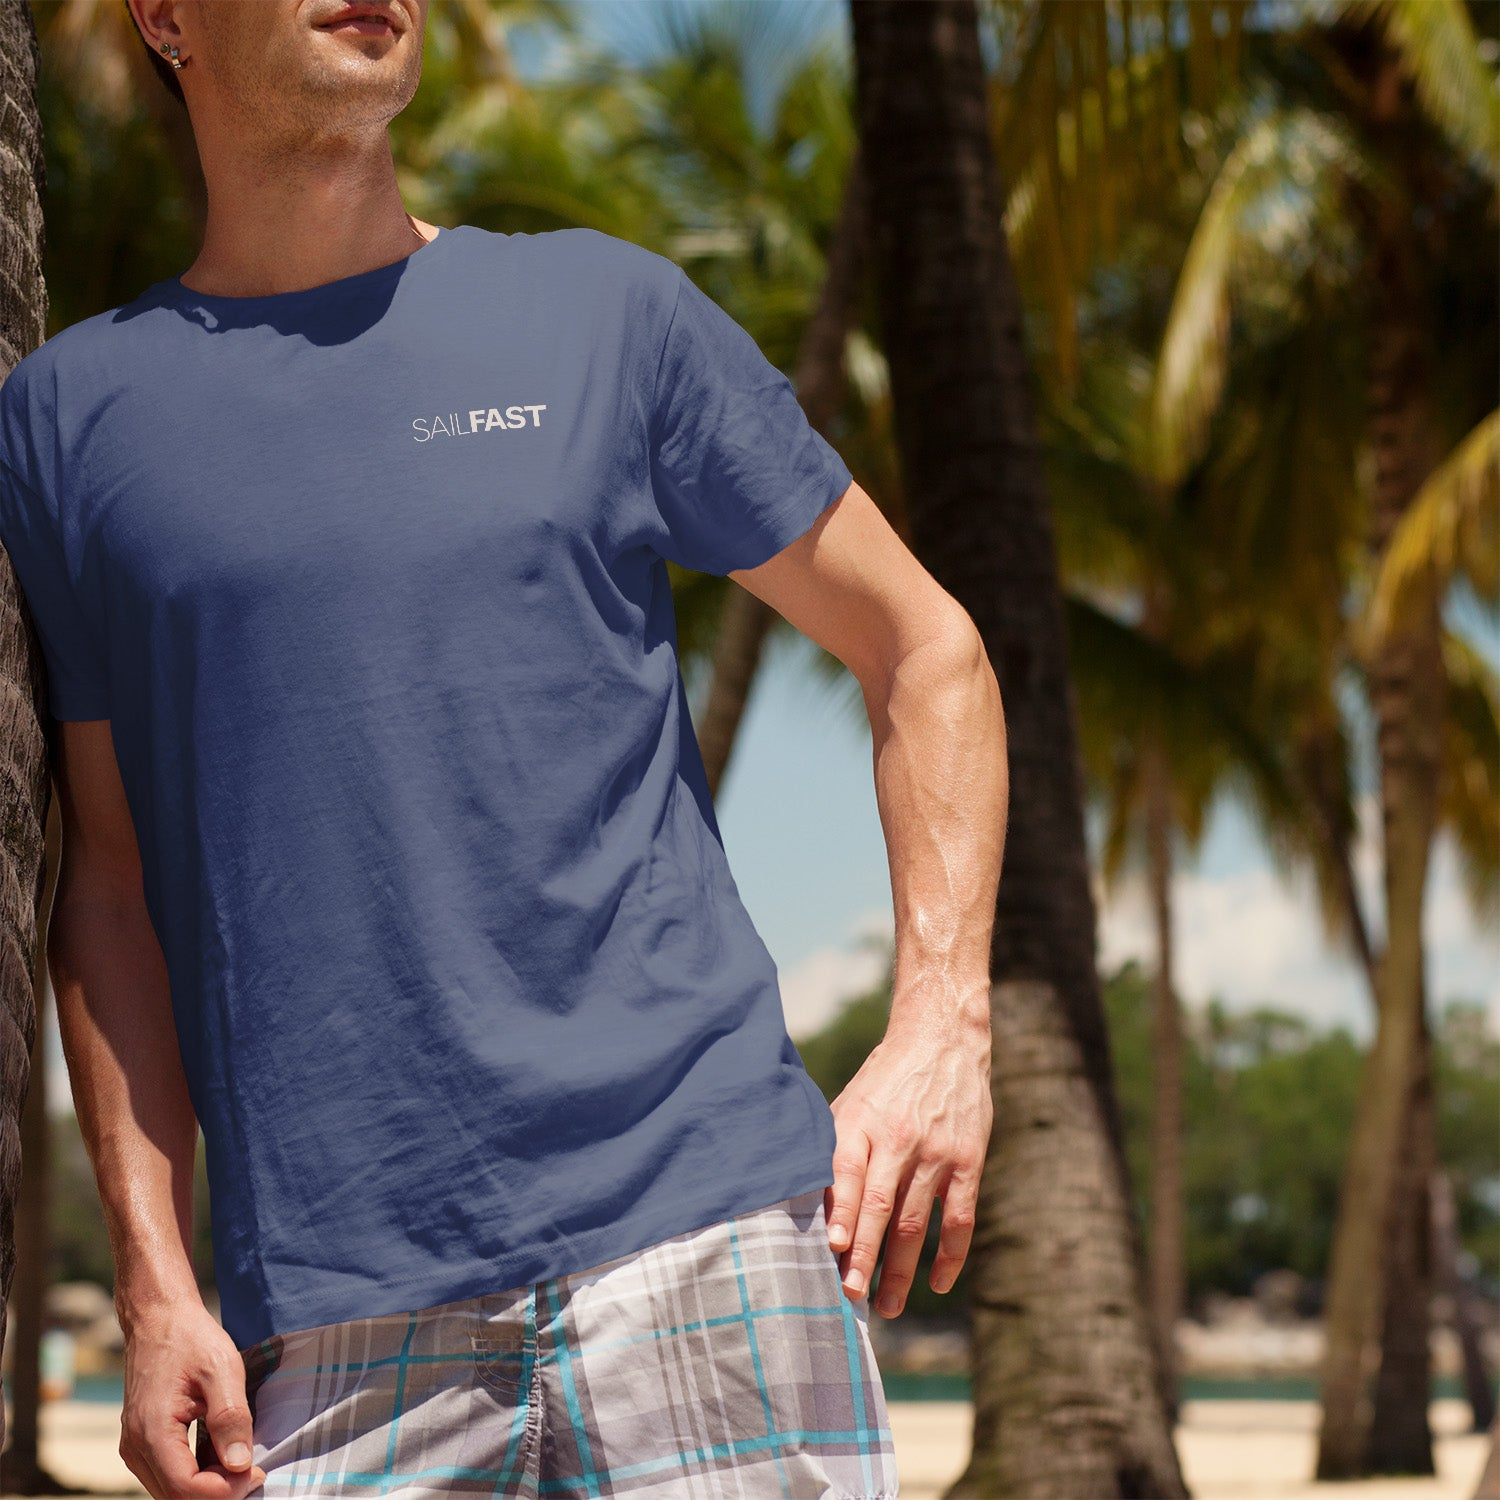 https://www.isailfast.com/collections/mens-bamboo-shirts/products/pacific-sea-blue-bamboo